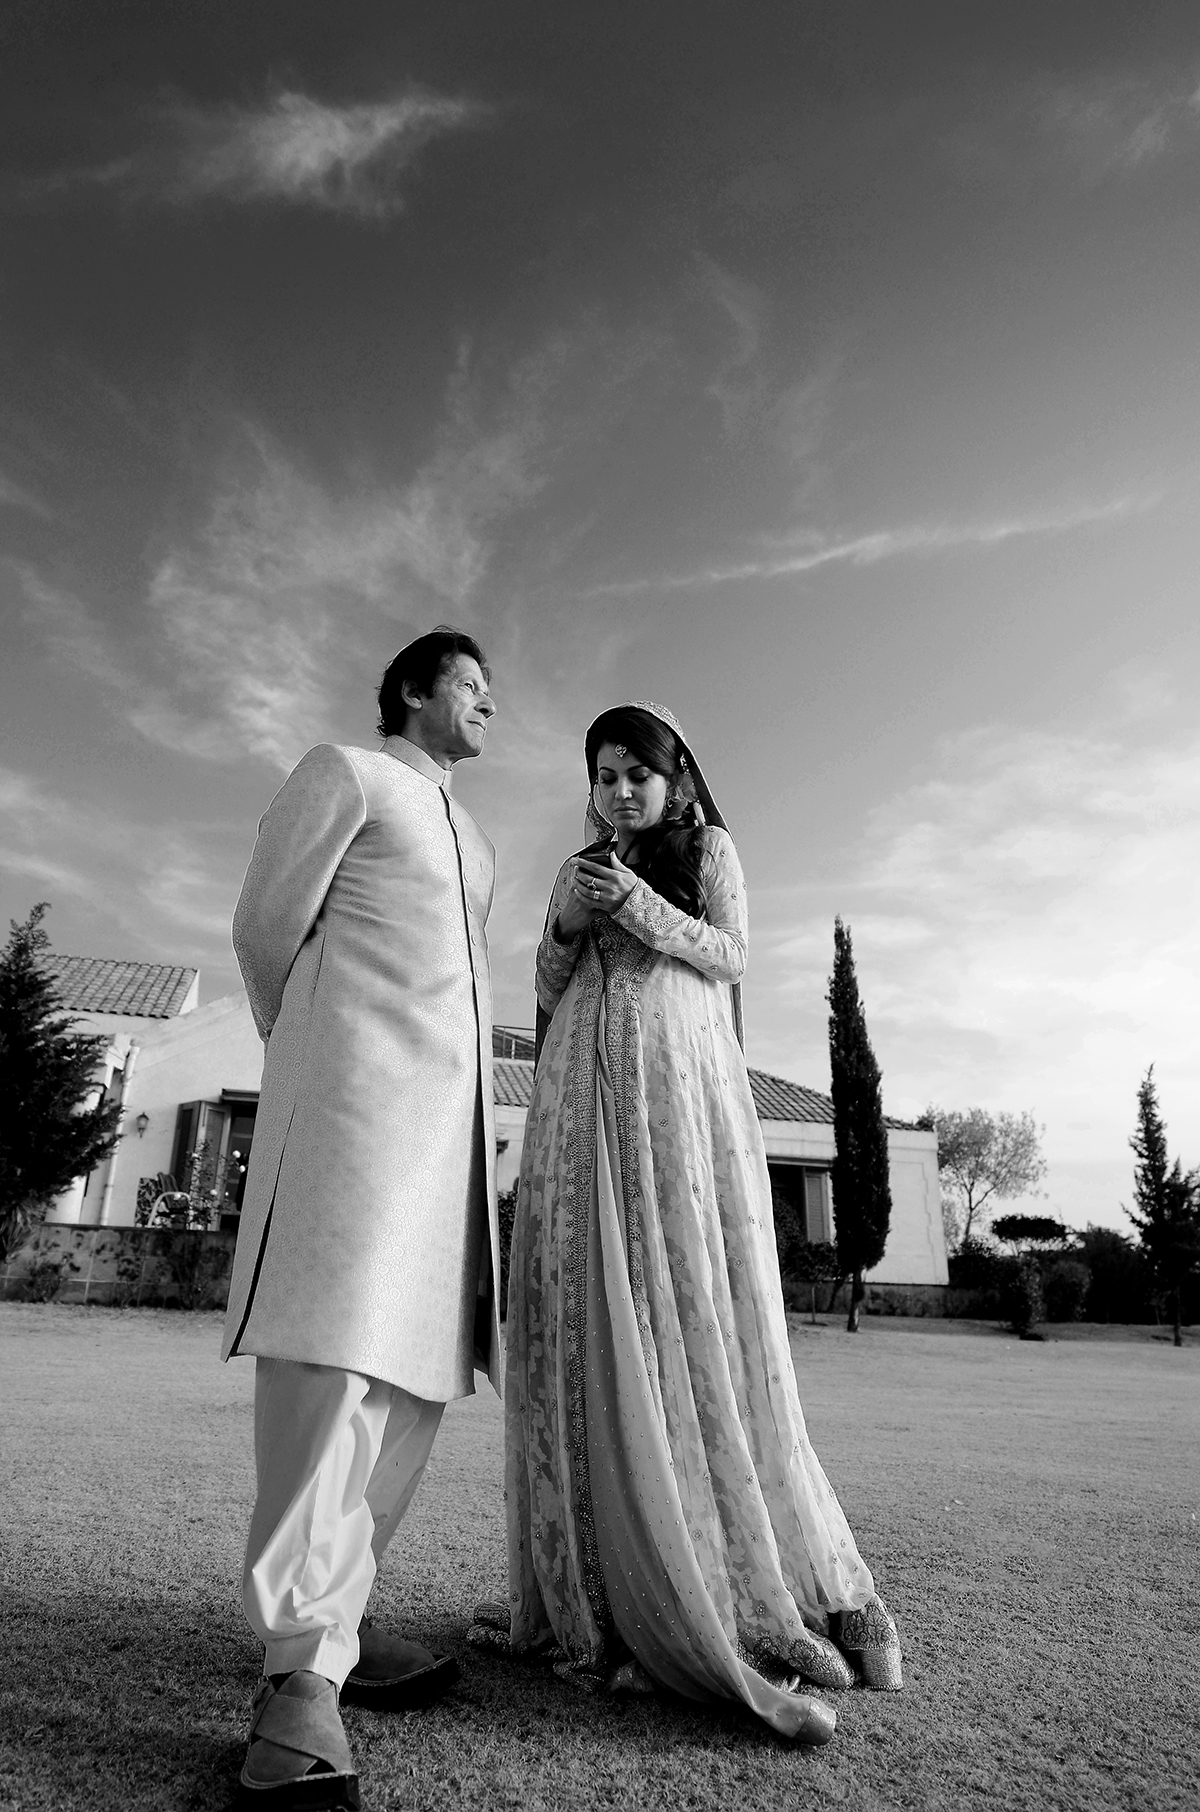 The newly wed at their photo shoot. — Photo by Belal Khan